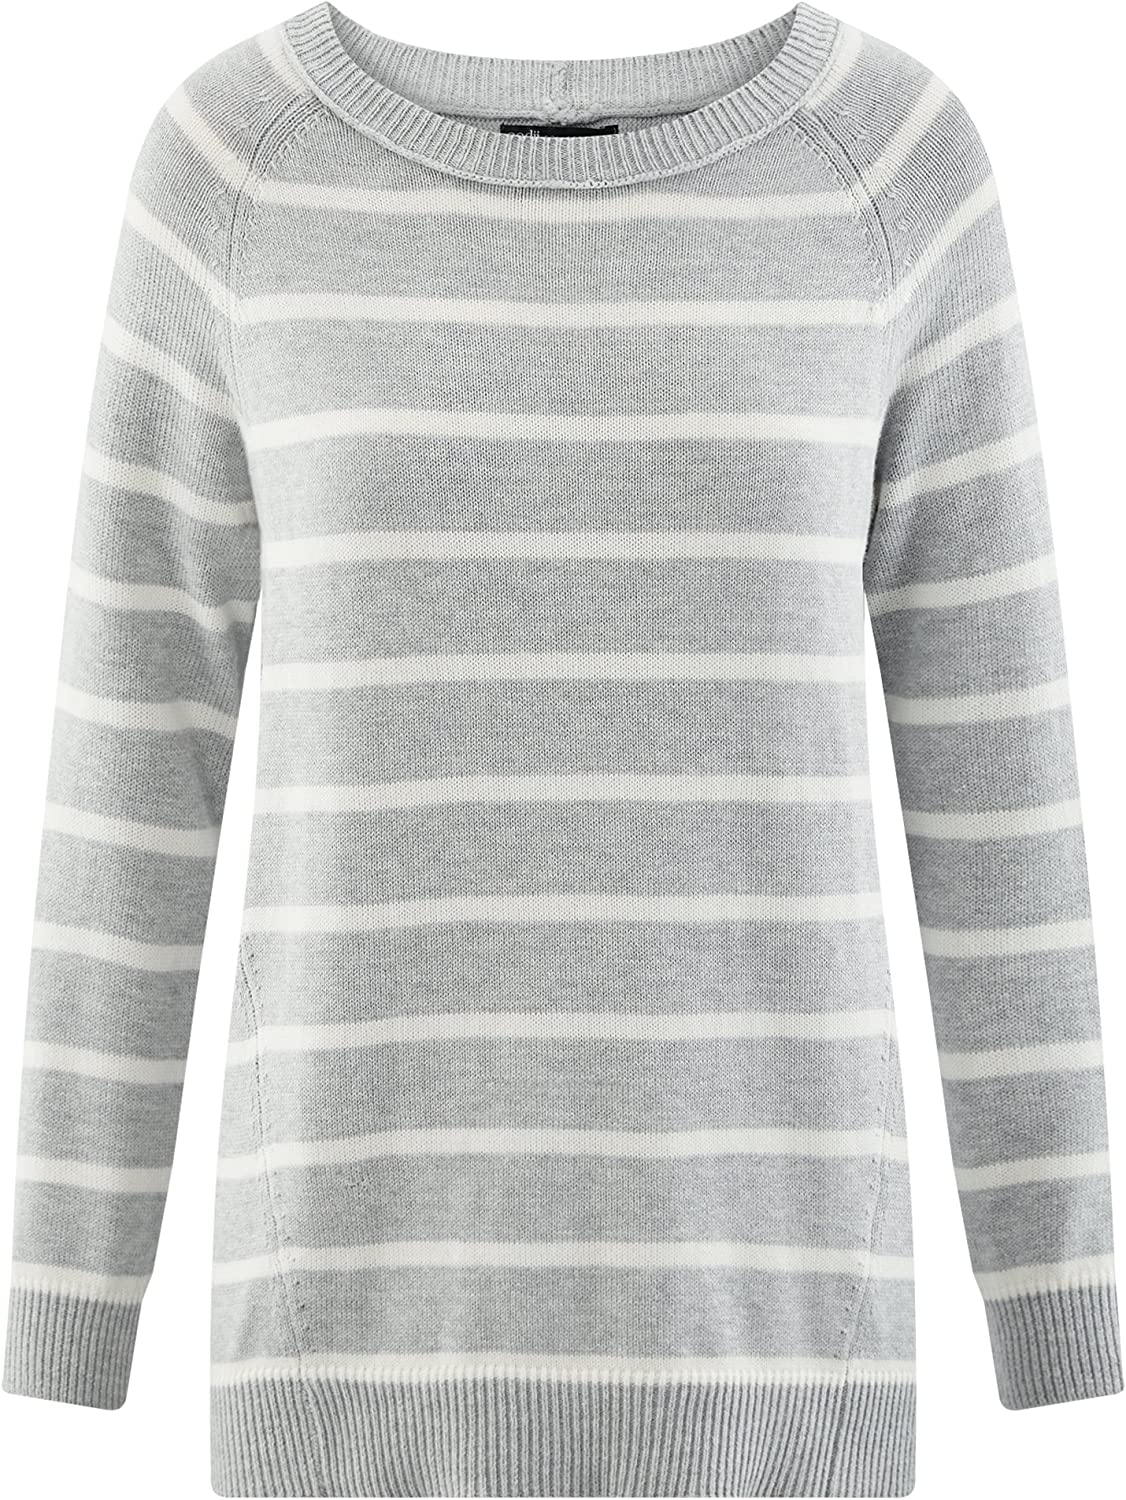 oodji Collection Mujer Jersey Ancho a Rayas